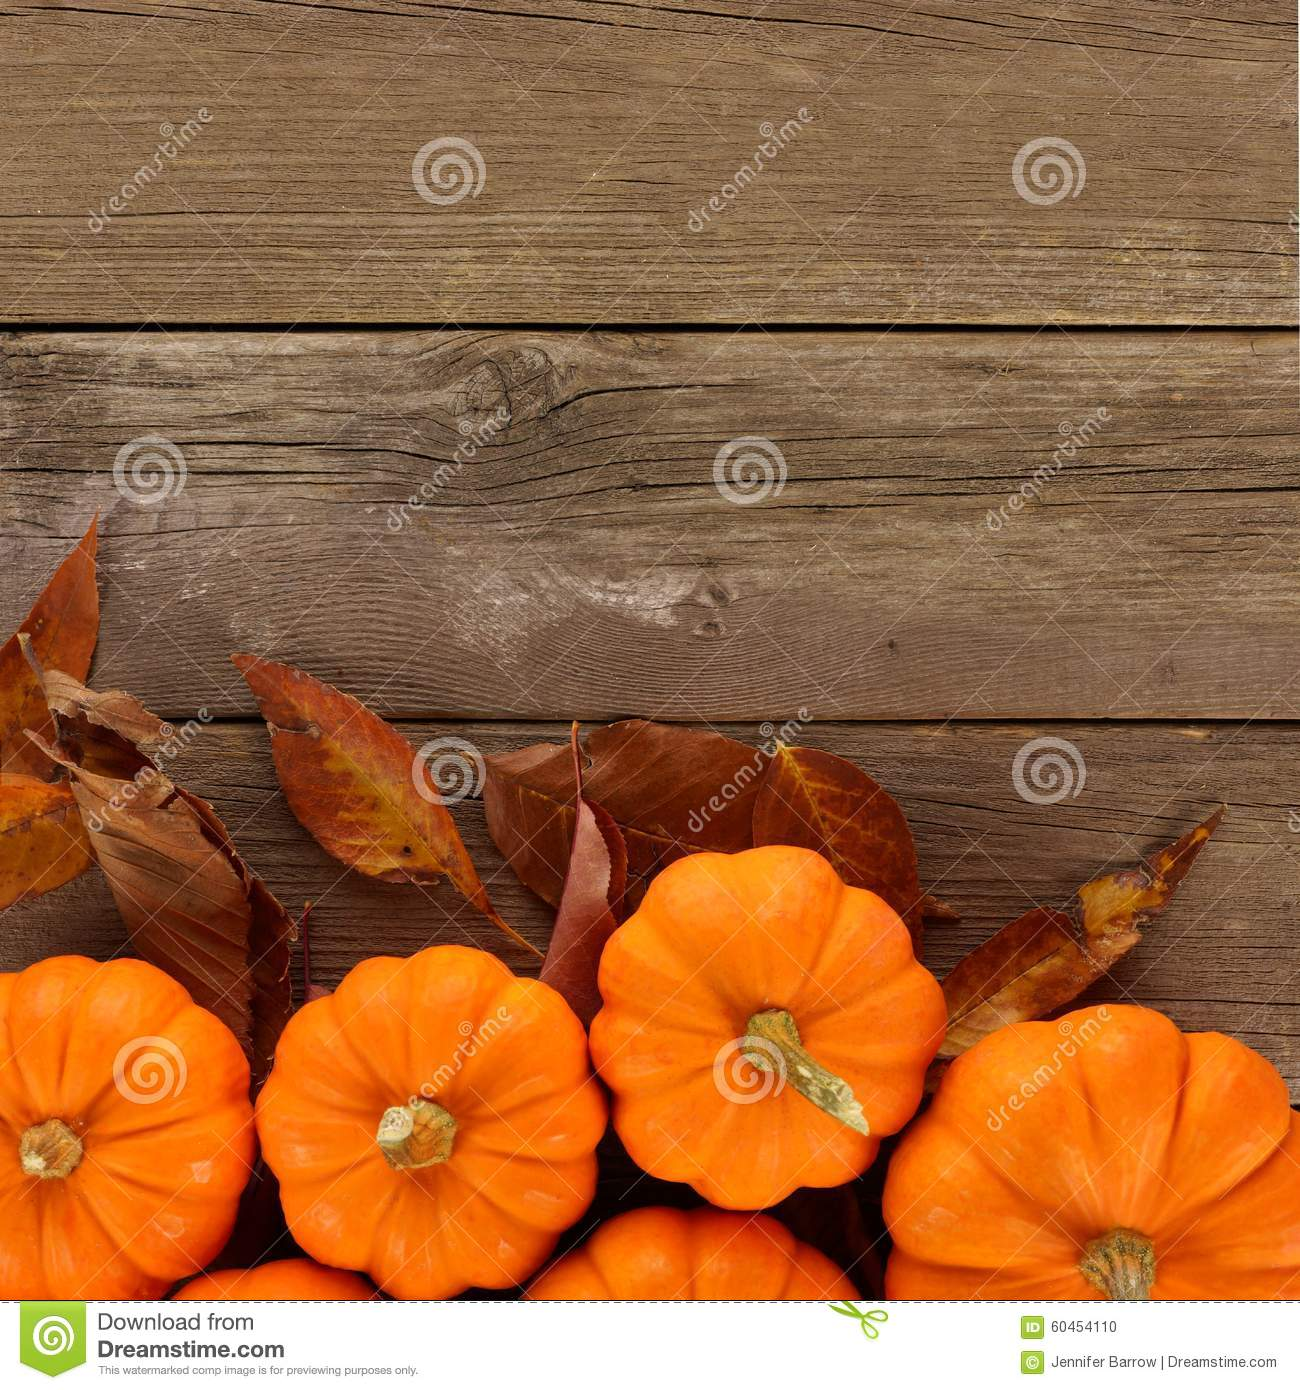 Autumn Pumpkins And Leaves Border On Rustic Wood Background